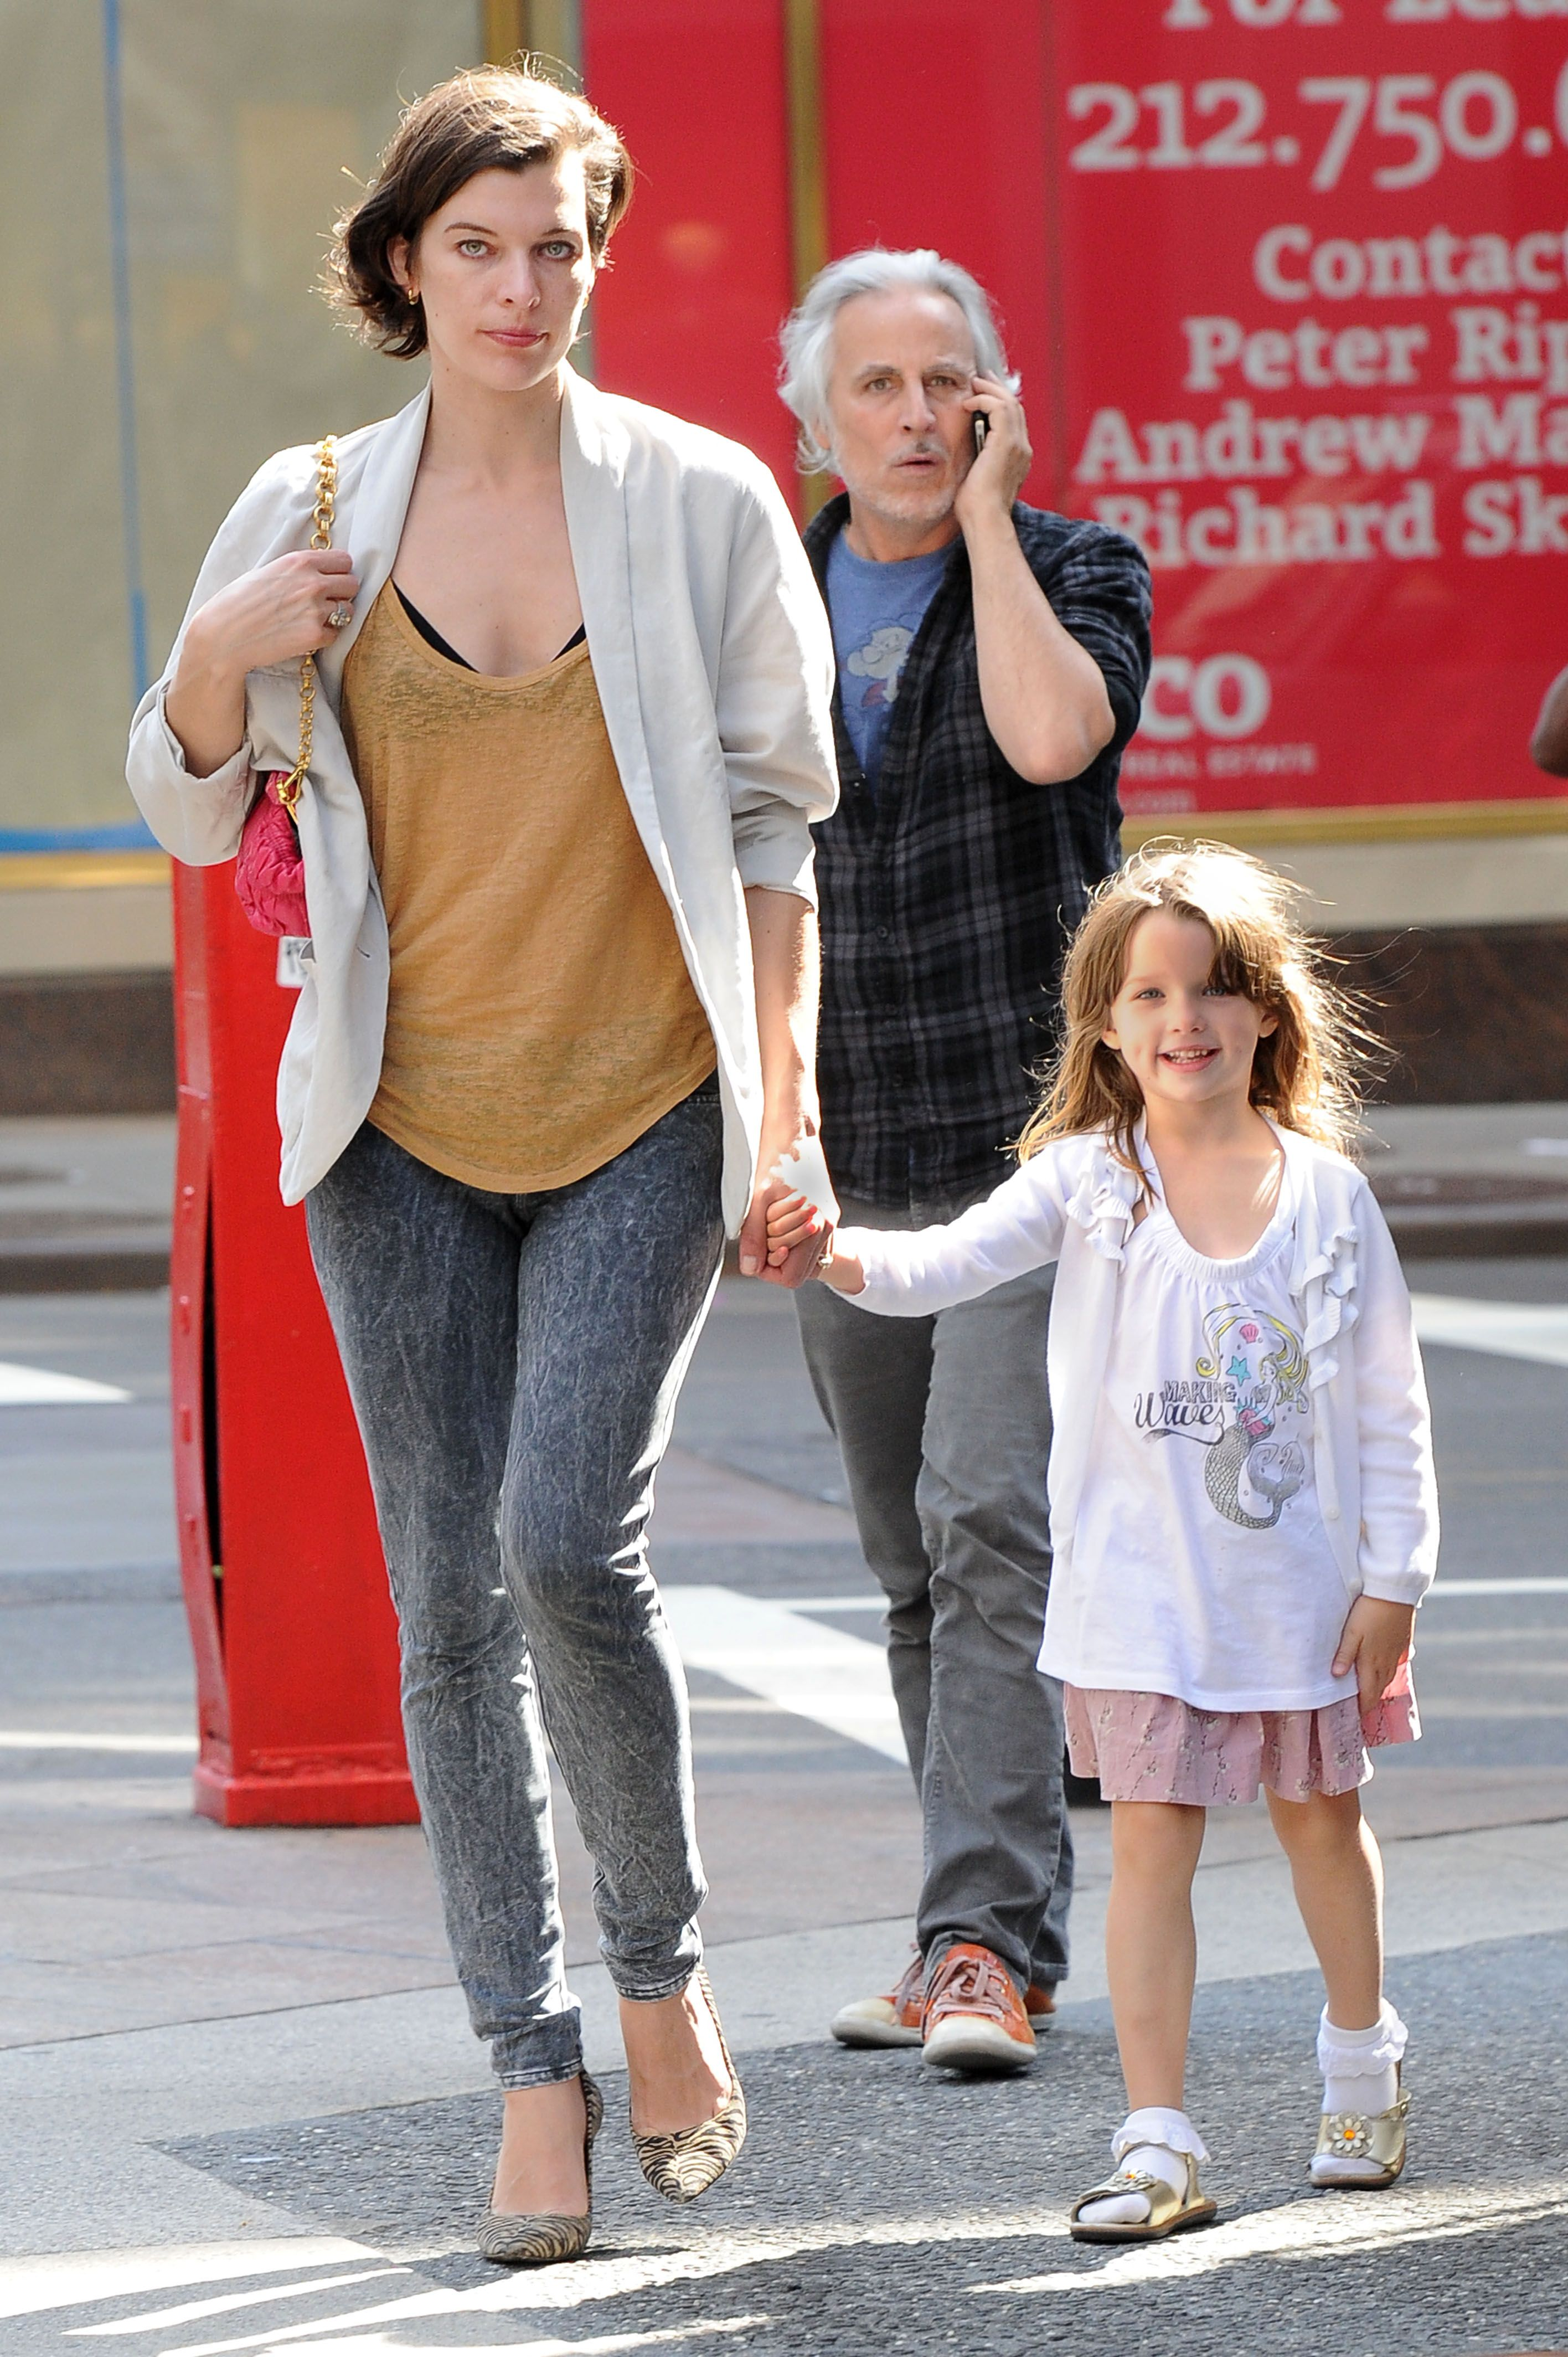 Three princesses: Milla Jovovich and her daughters fascinated the Internet 23